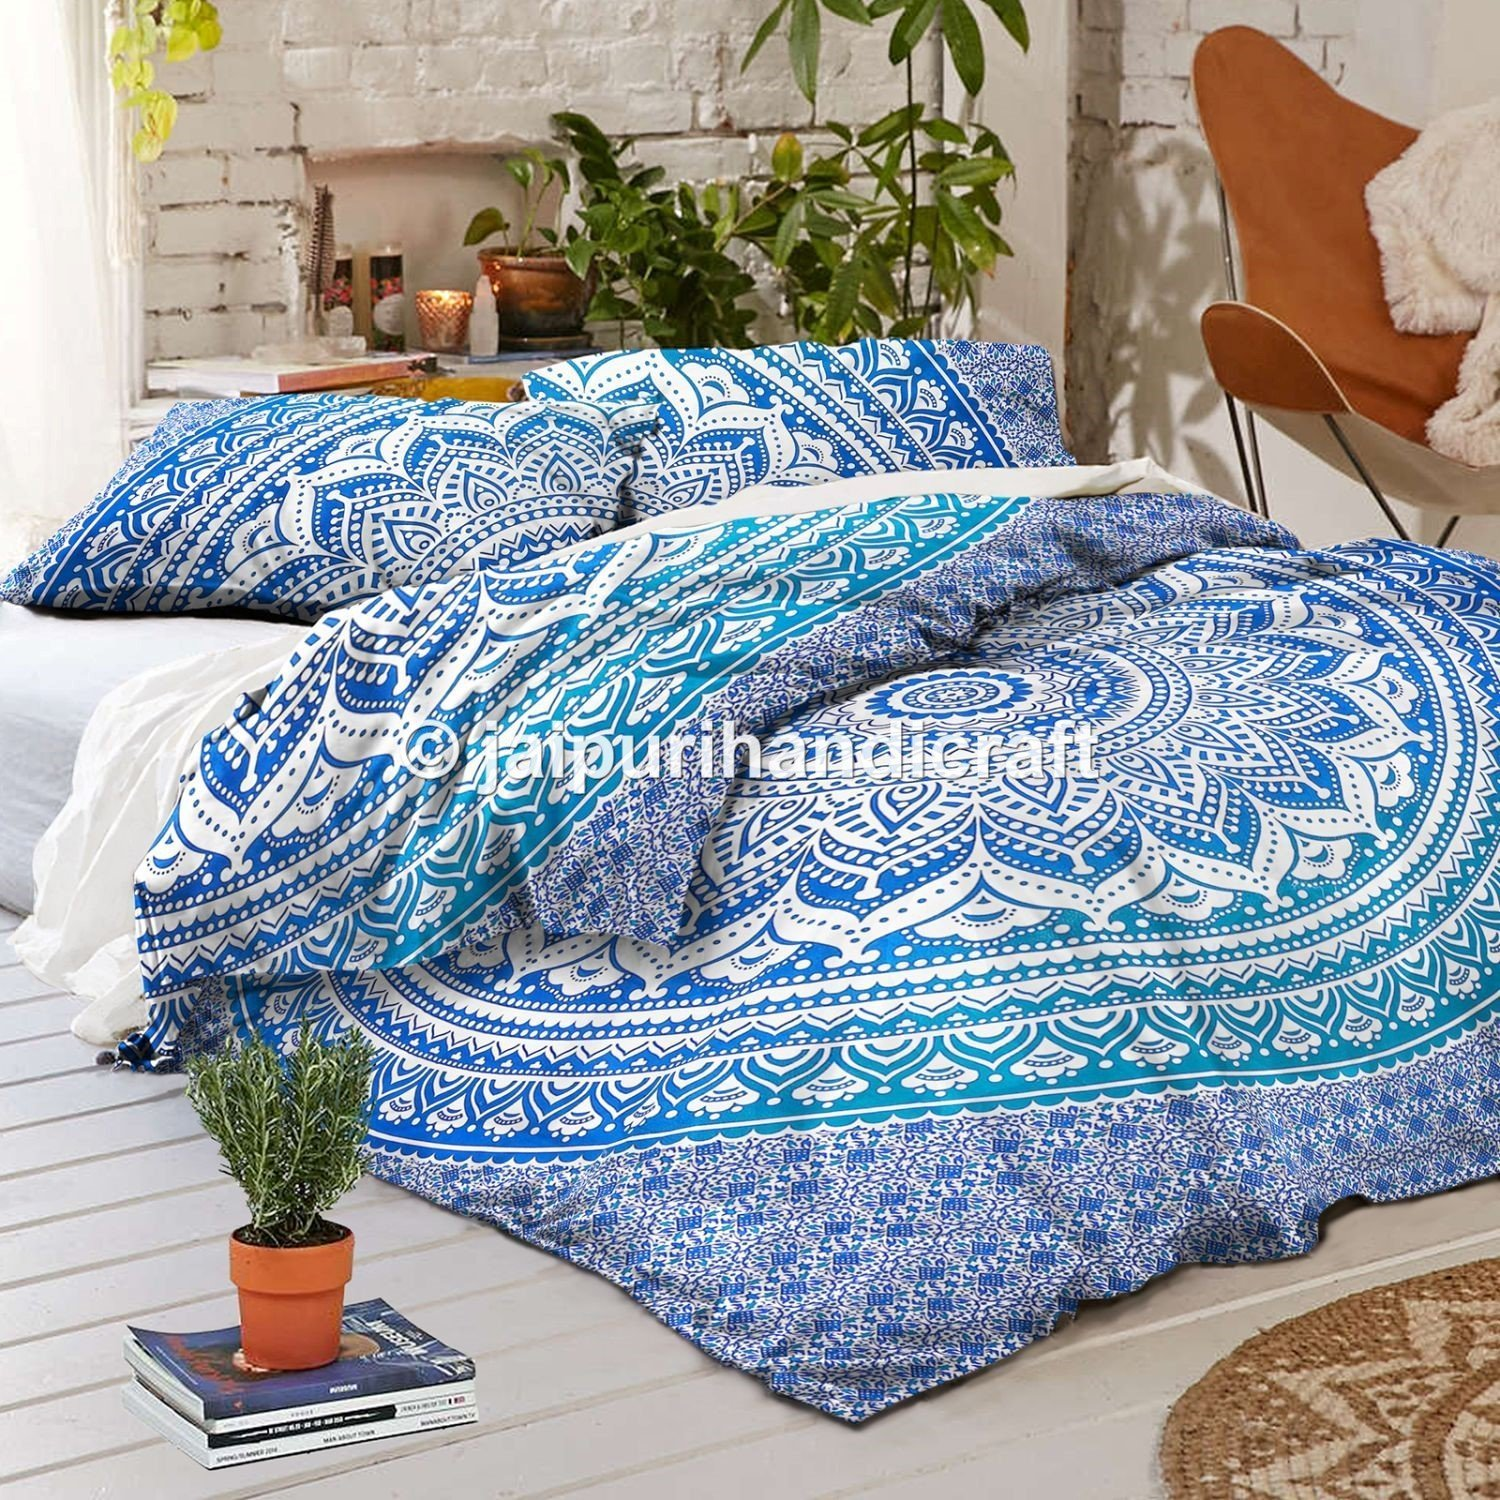 size luxury colors bohemian fascinating beautiful with cotton twin for full queen sets bedroom bedding classy modern comforter